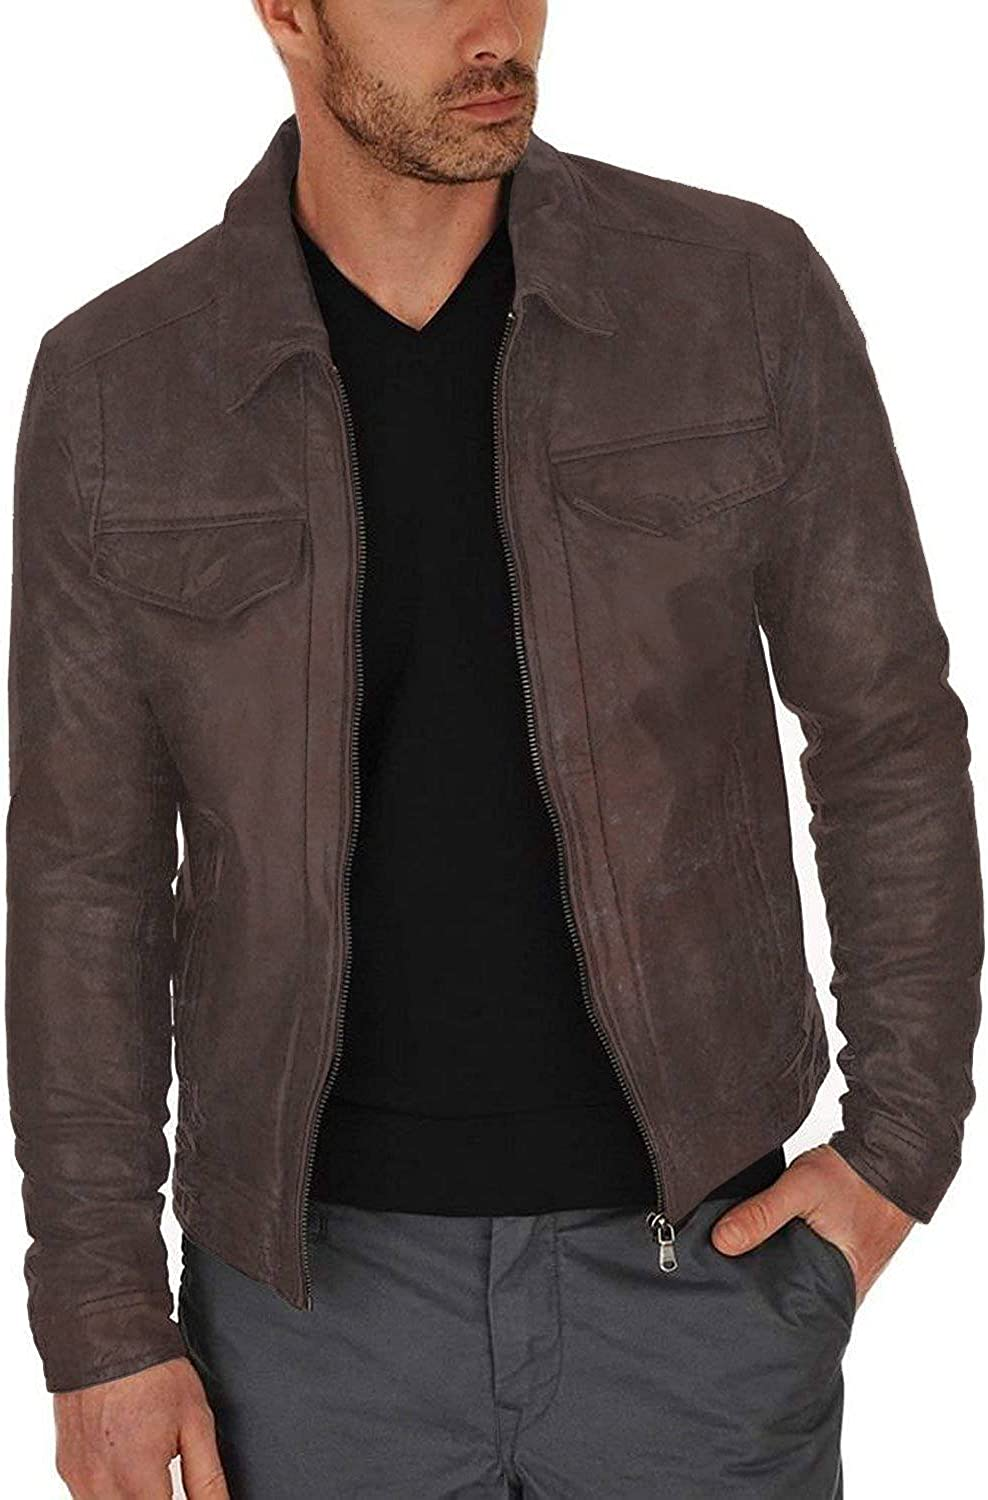 Lasumisura Mens Black Genuine Lambskin Leather Jacket 1510350